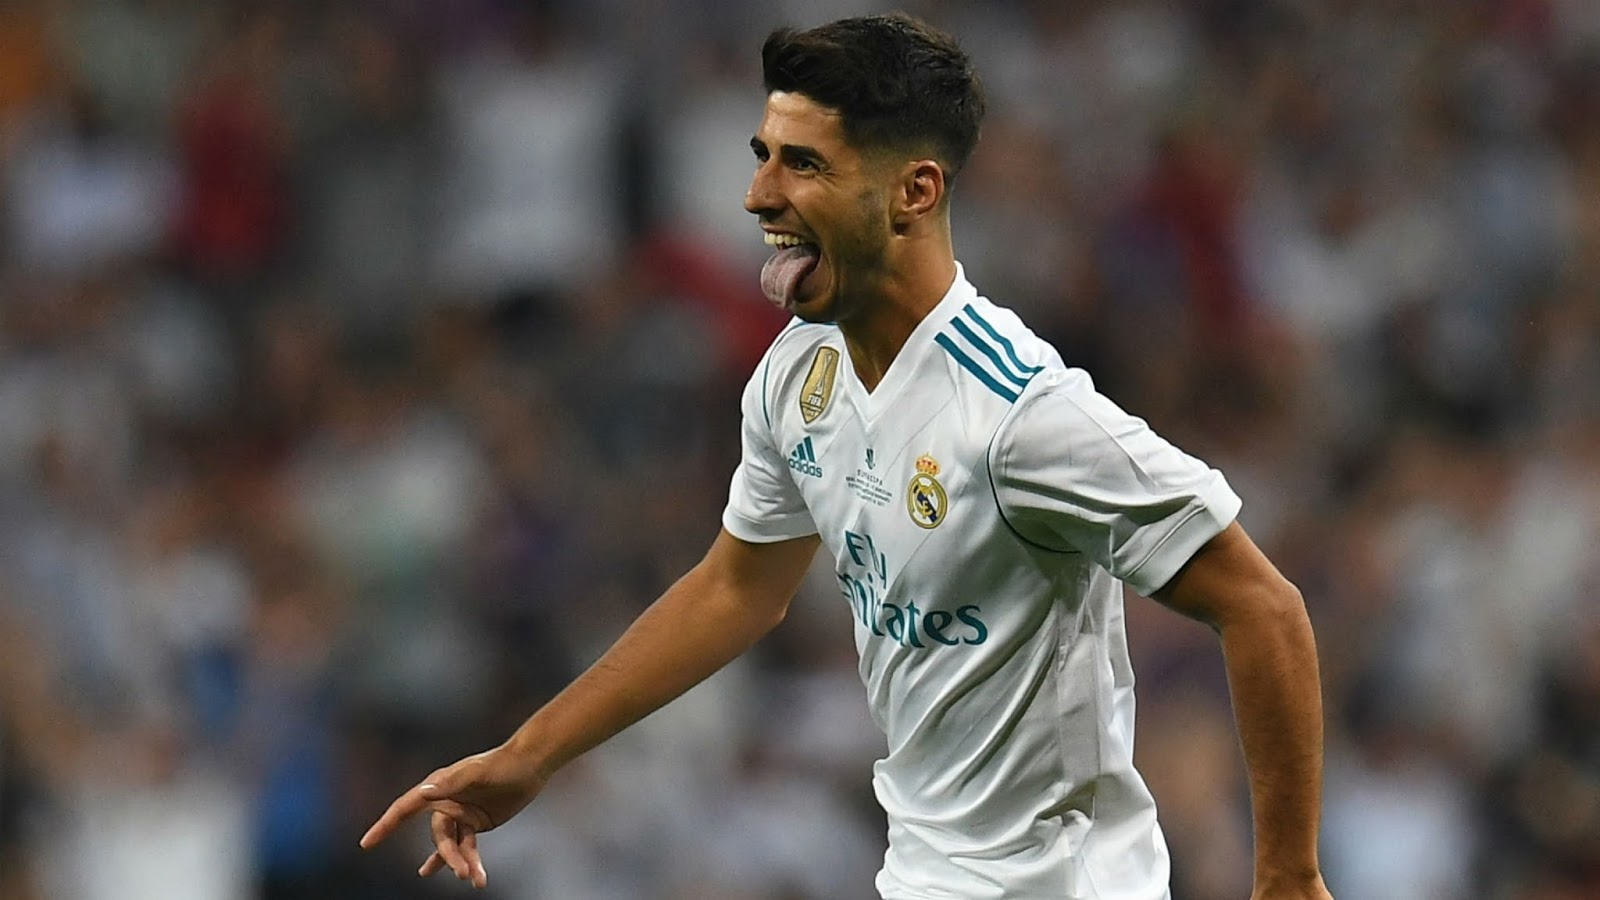 MARCO ASENSIO 9